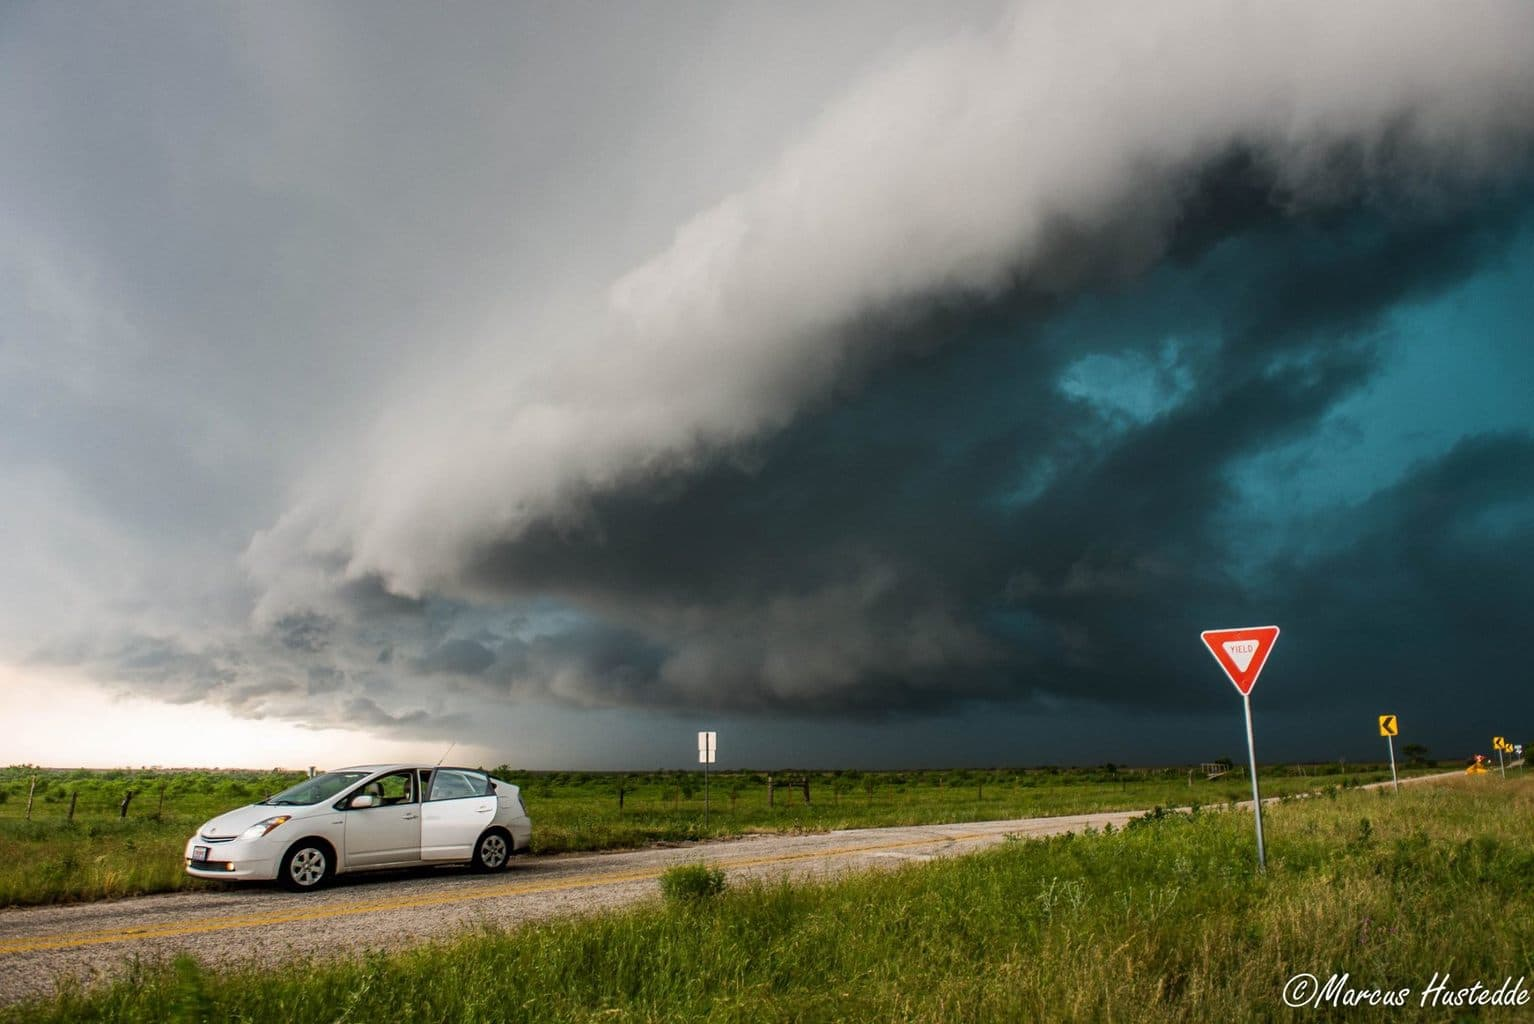 I rarely take storm photos with my car in the foreground but here is one of those rare occurrences on 5-8-15 in central Texas....Yes I chase in a Prius!